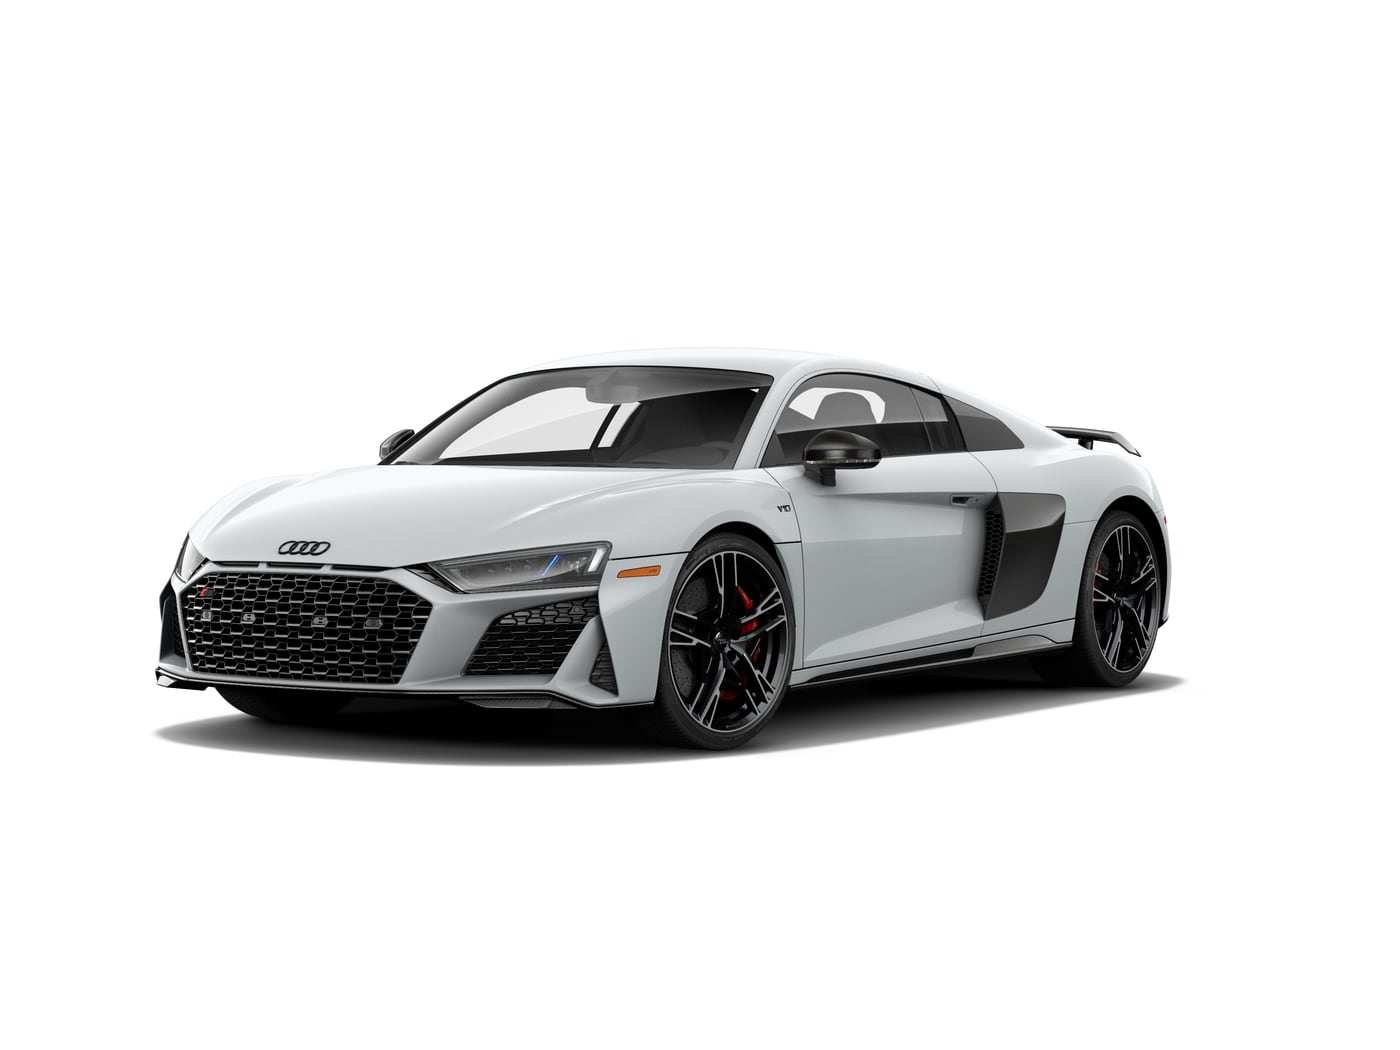 32 Great 2020 Audi R8 For Sale Rumors by 2020 Audi R8 For Sale